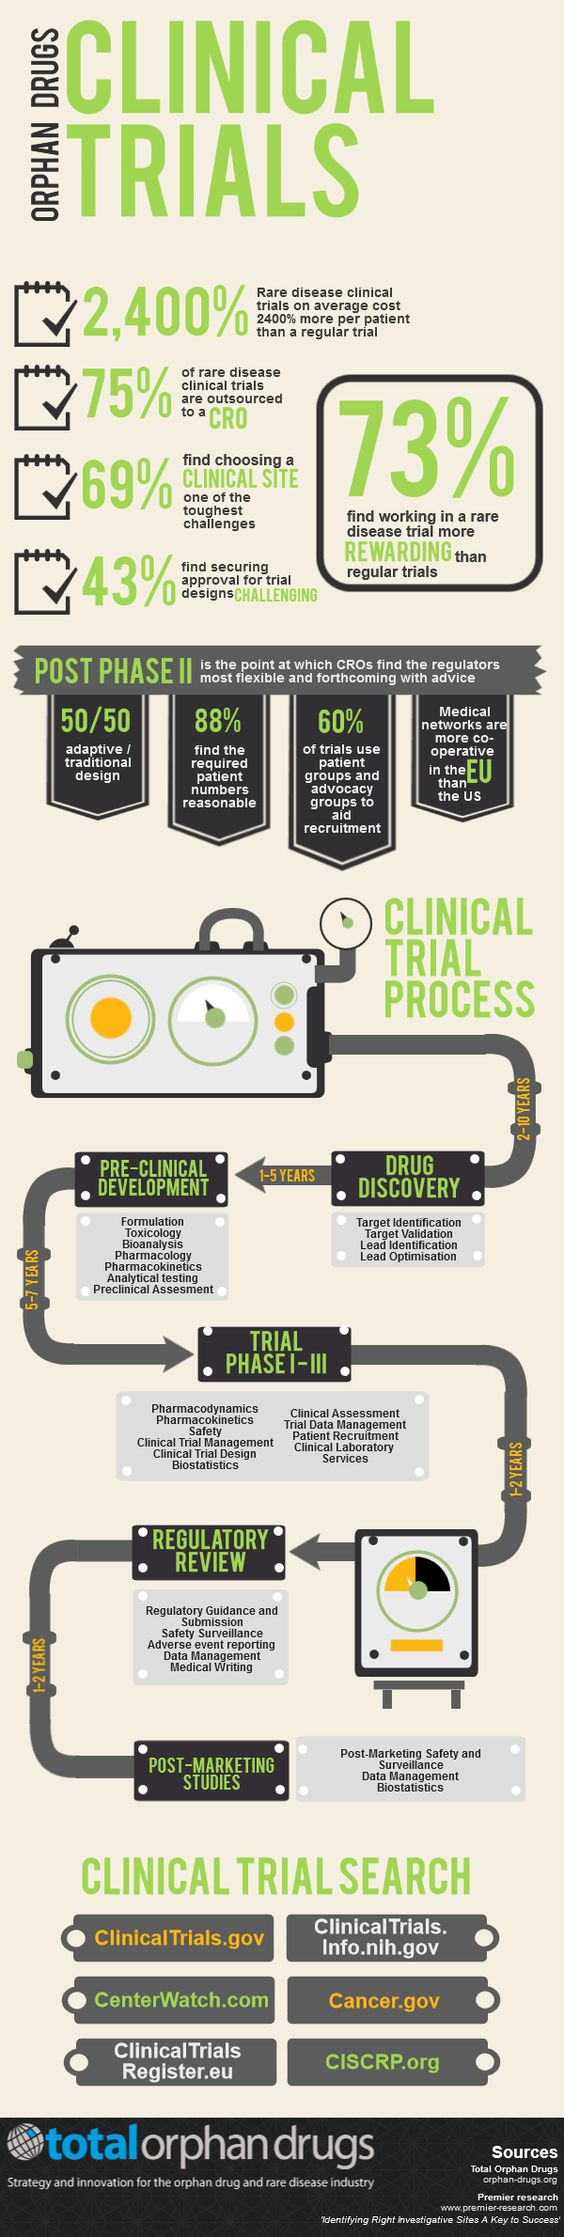 Infographic Rare disease clinical trial facts and figures